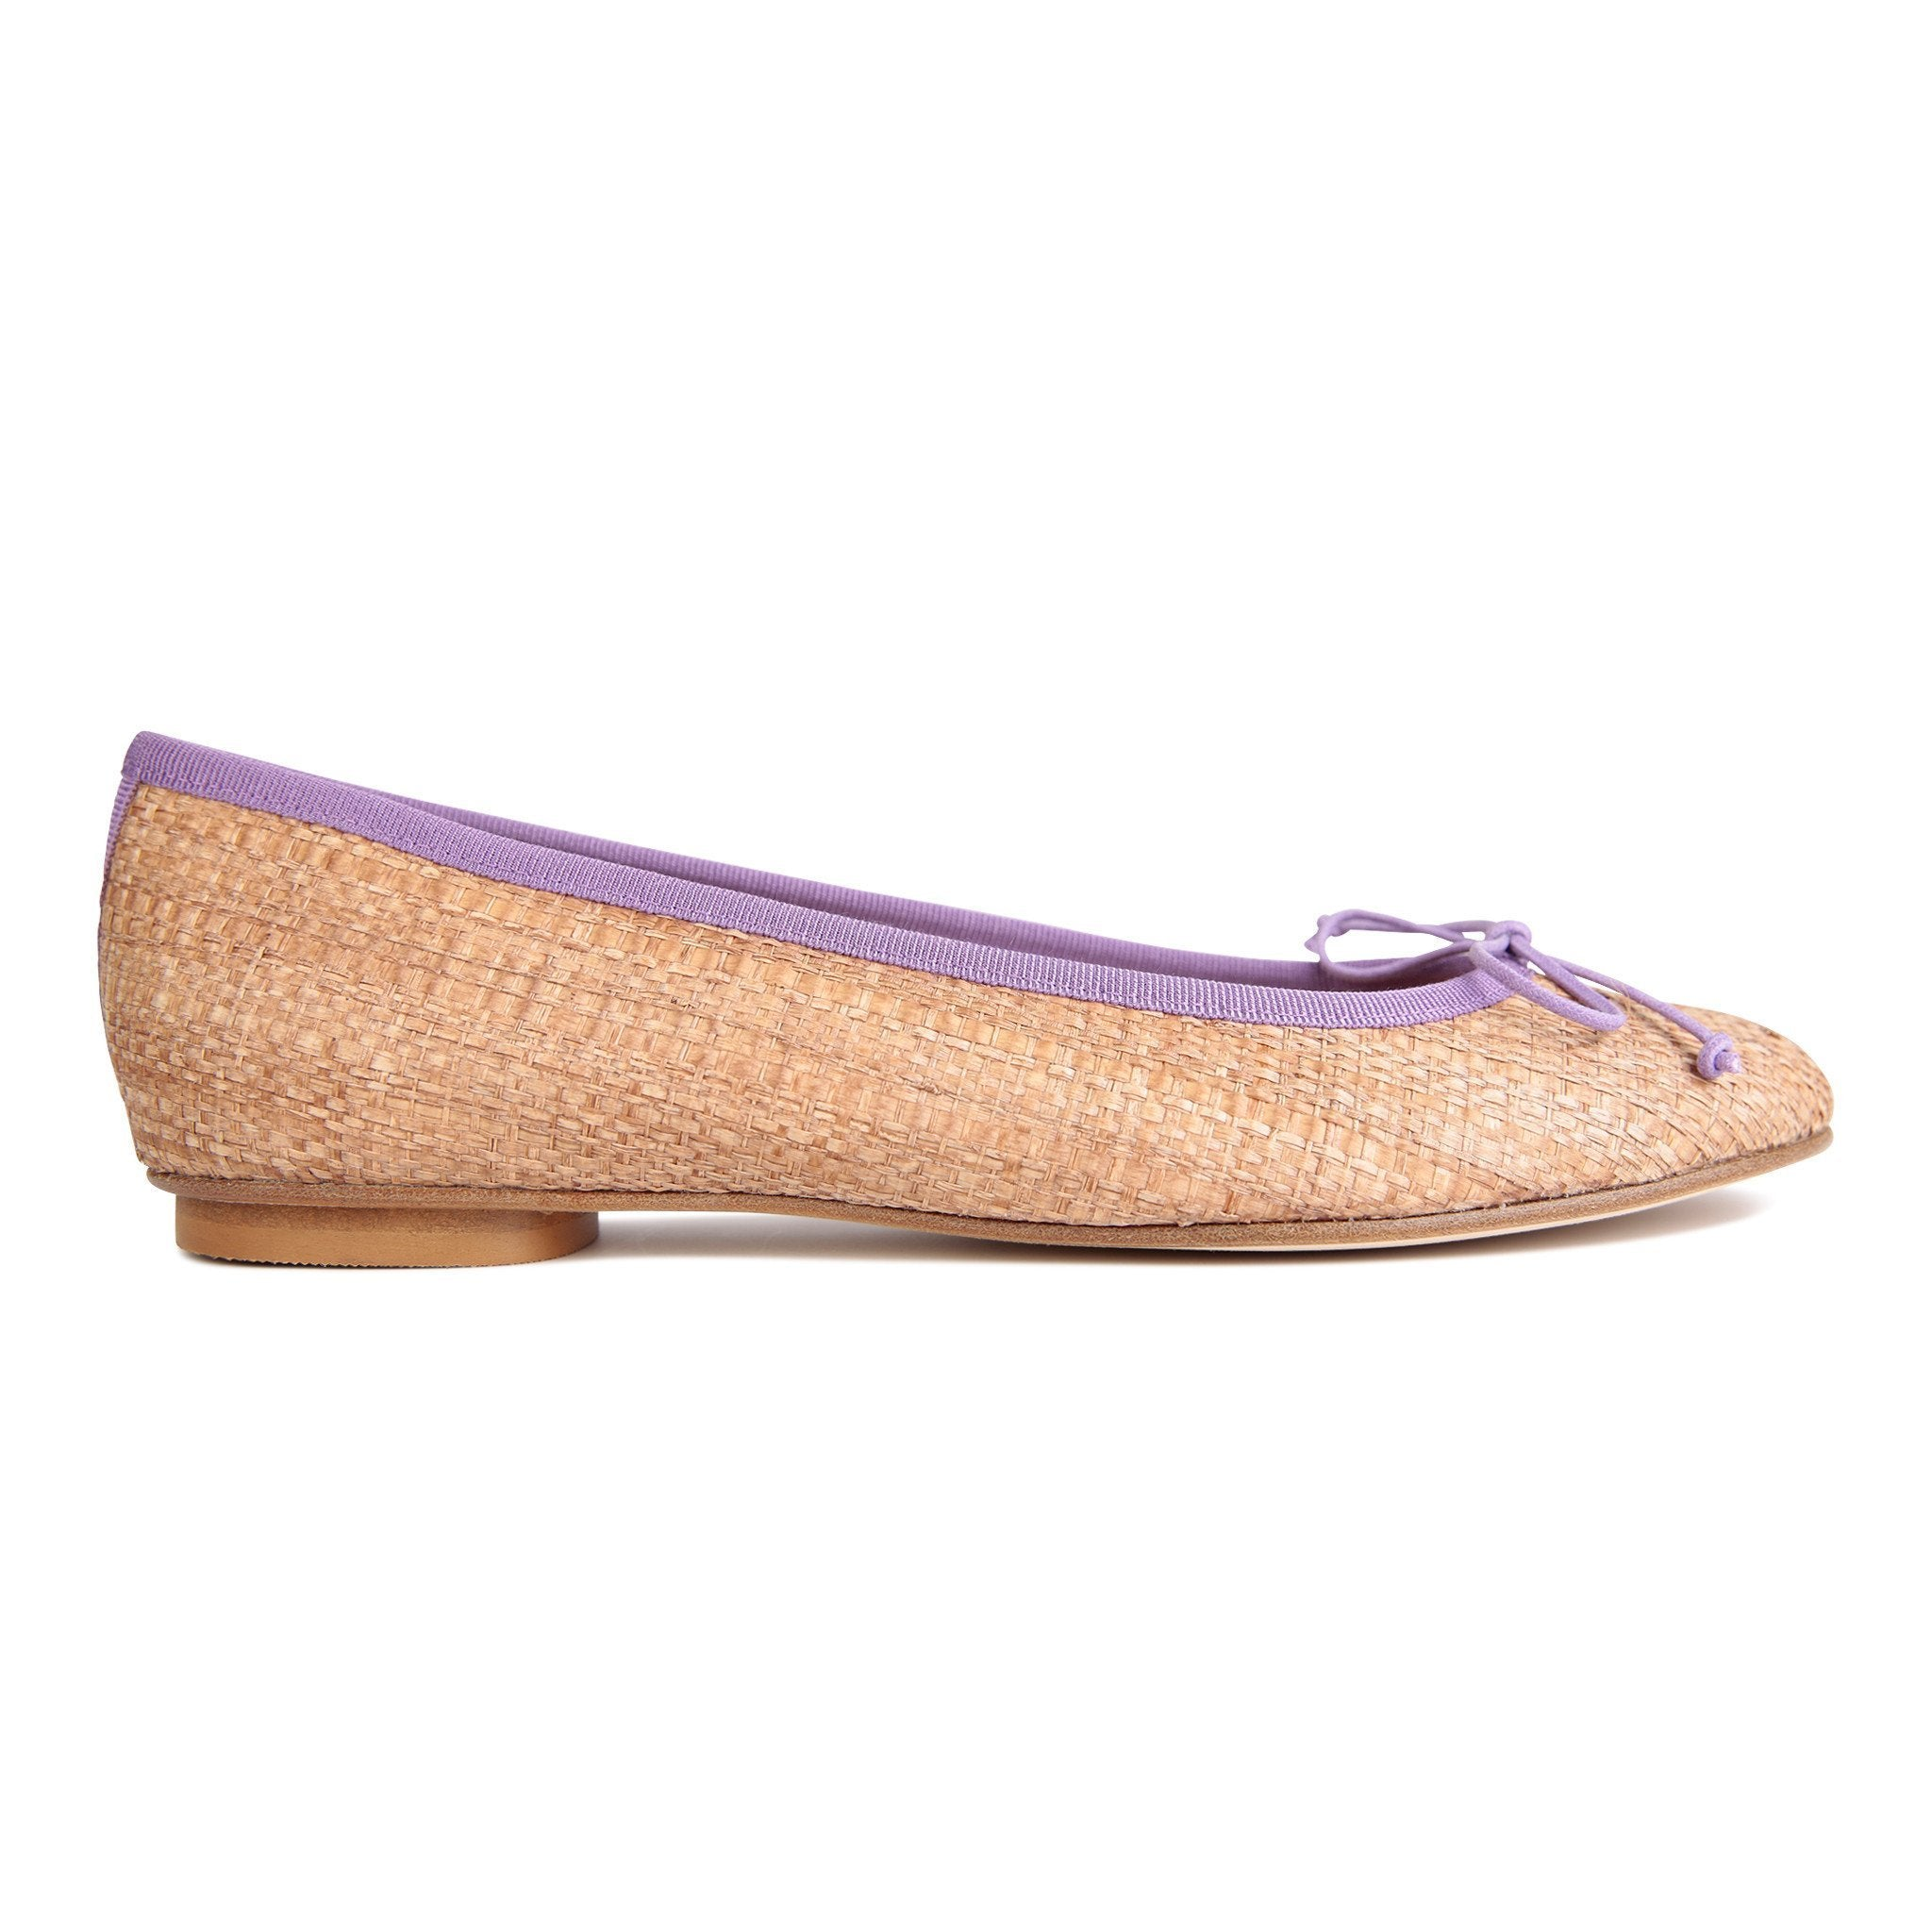 ROMA - Raffia Natural + Drawstring Circlamino Bow, VIAJIYU - Women's Hand Made Sustainable Luxury Shoes. Made in Italy. Made to Order.